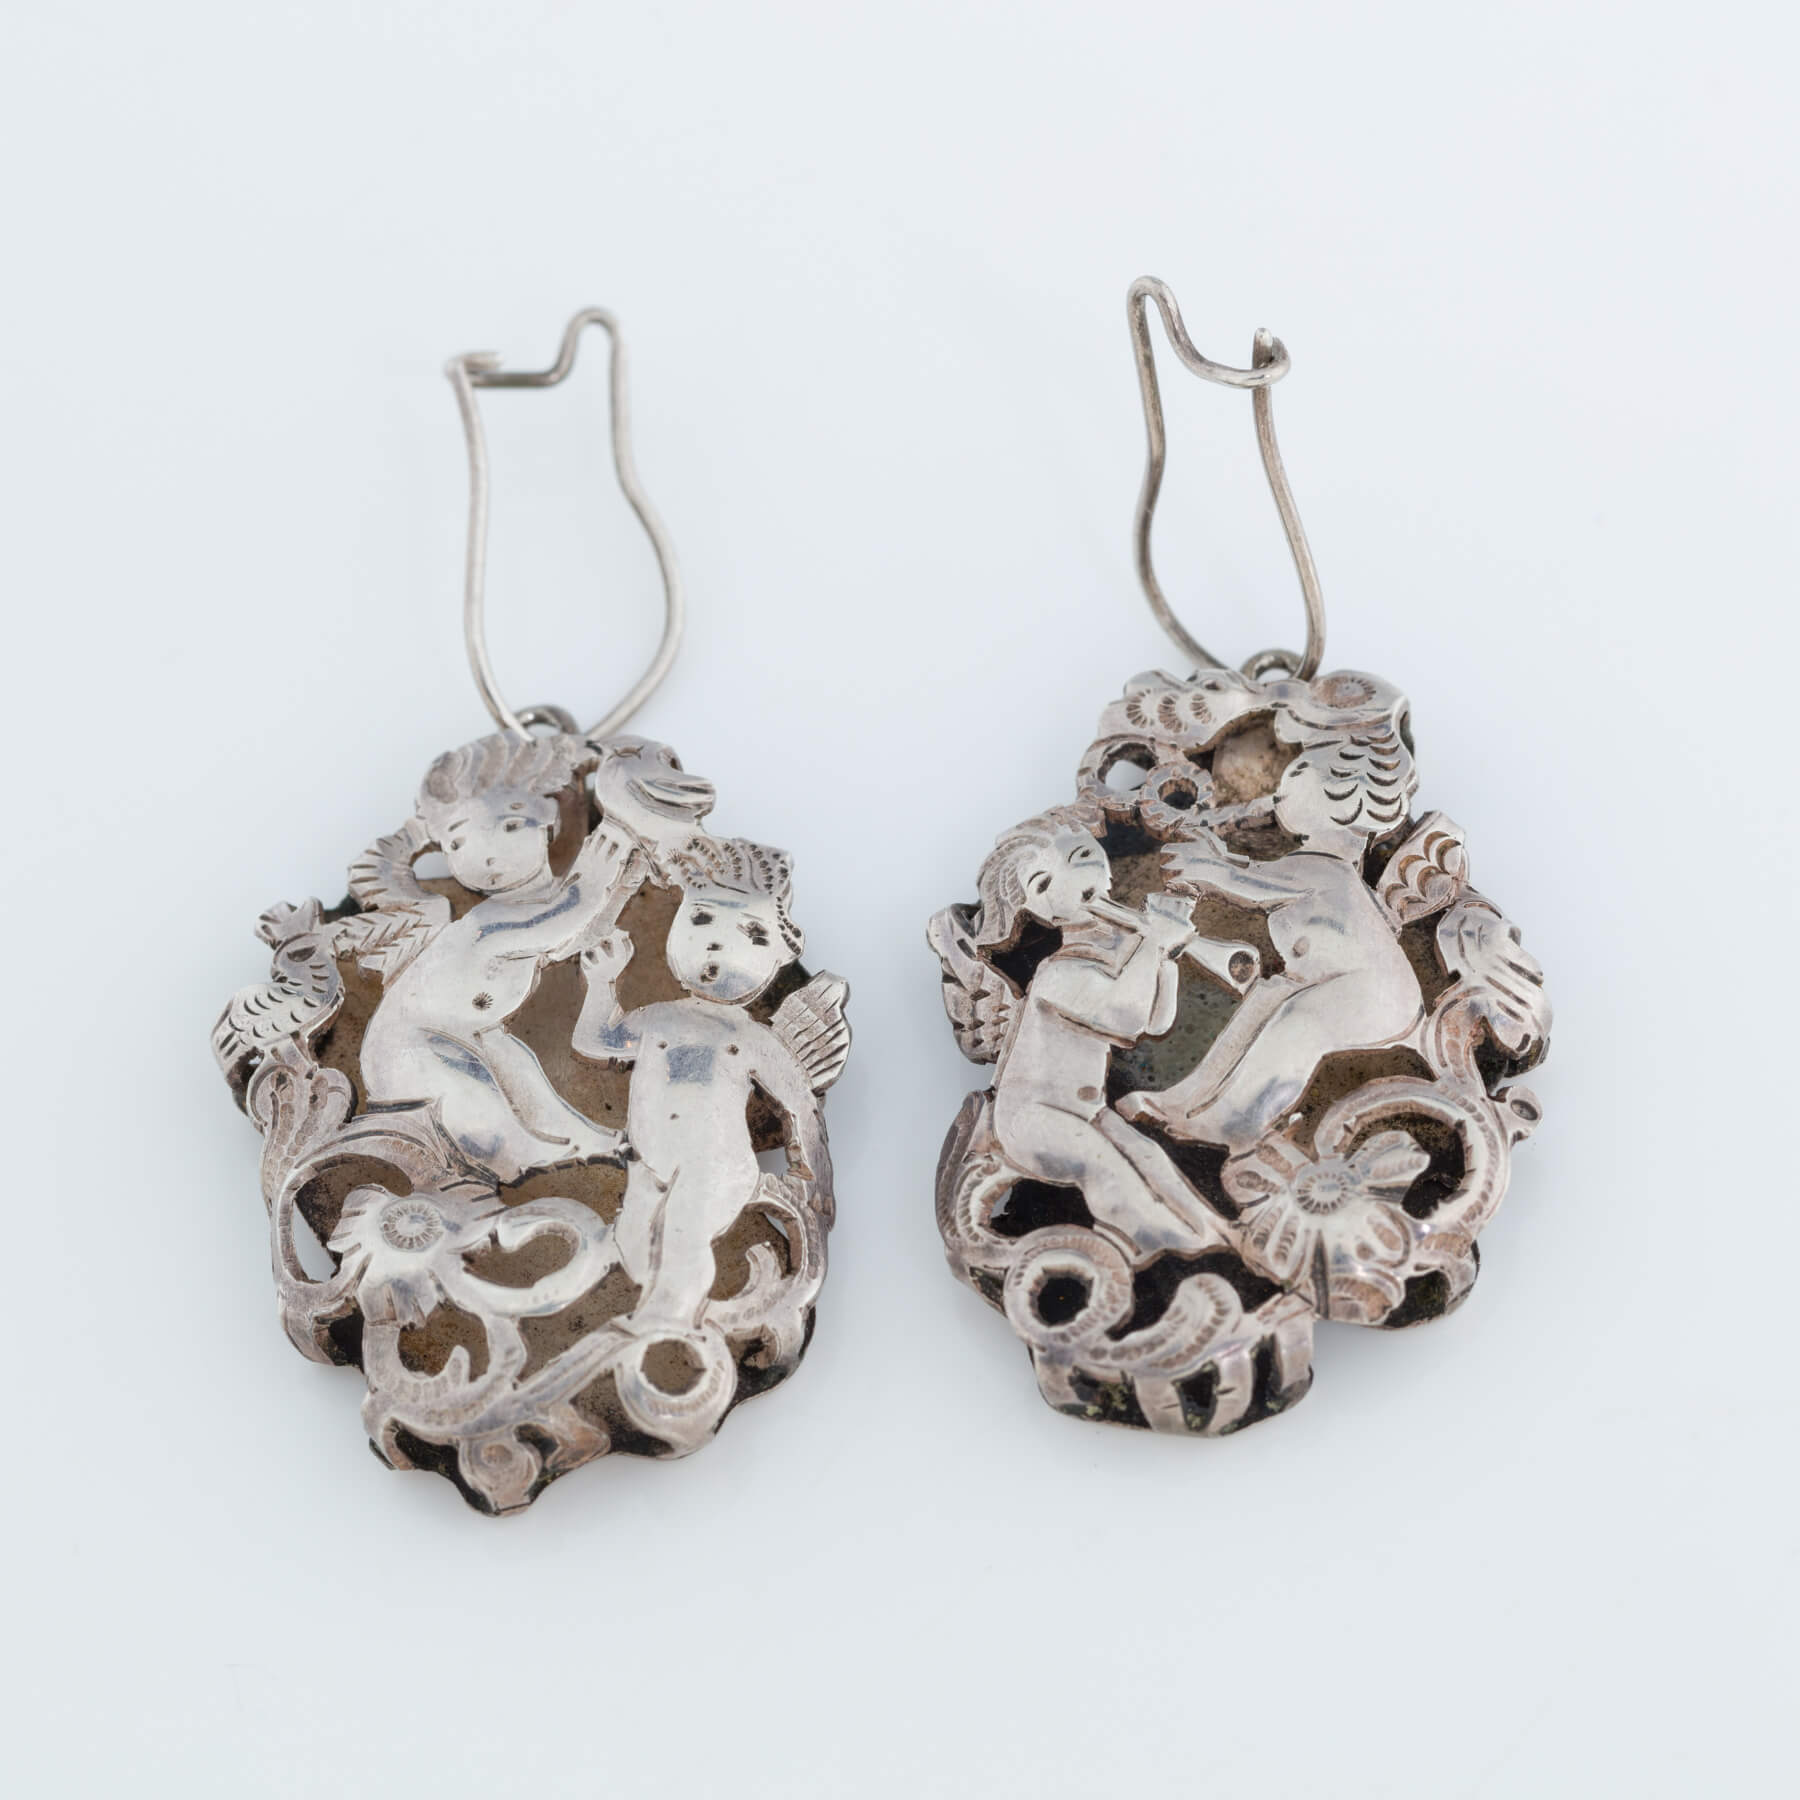 182. A Pair of Sterling Silver Earrings by Ilya Schor